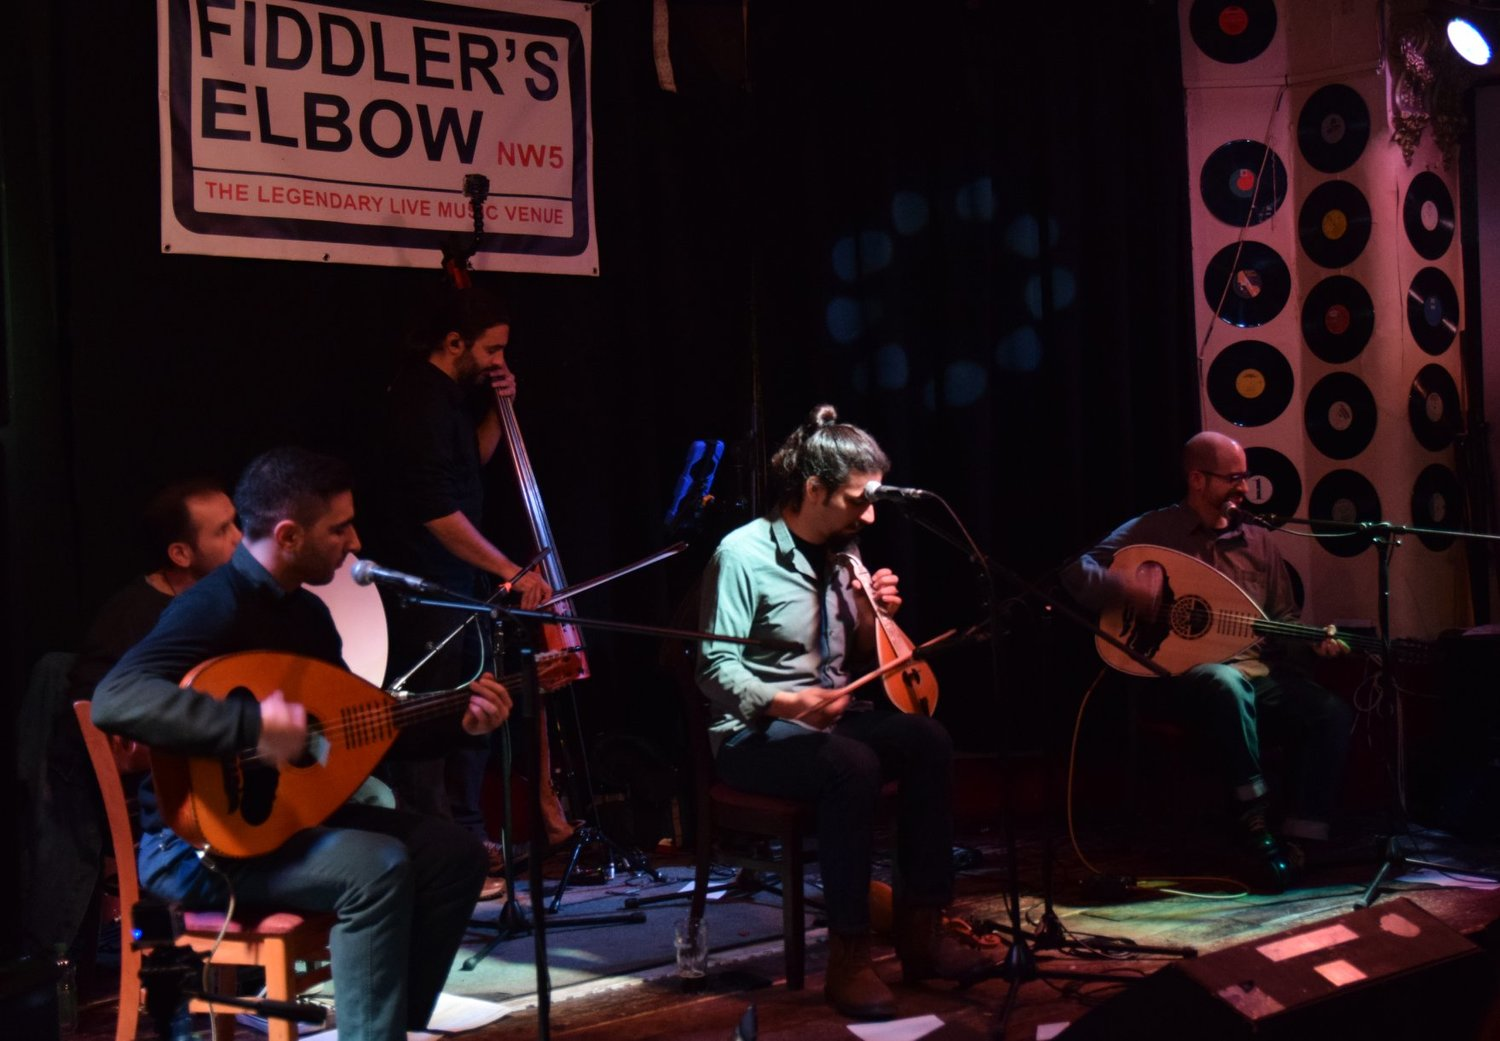 CRETAN BRIOCHE is a London-based Cretan folk music   at The Fiddler's Elbow promotional image